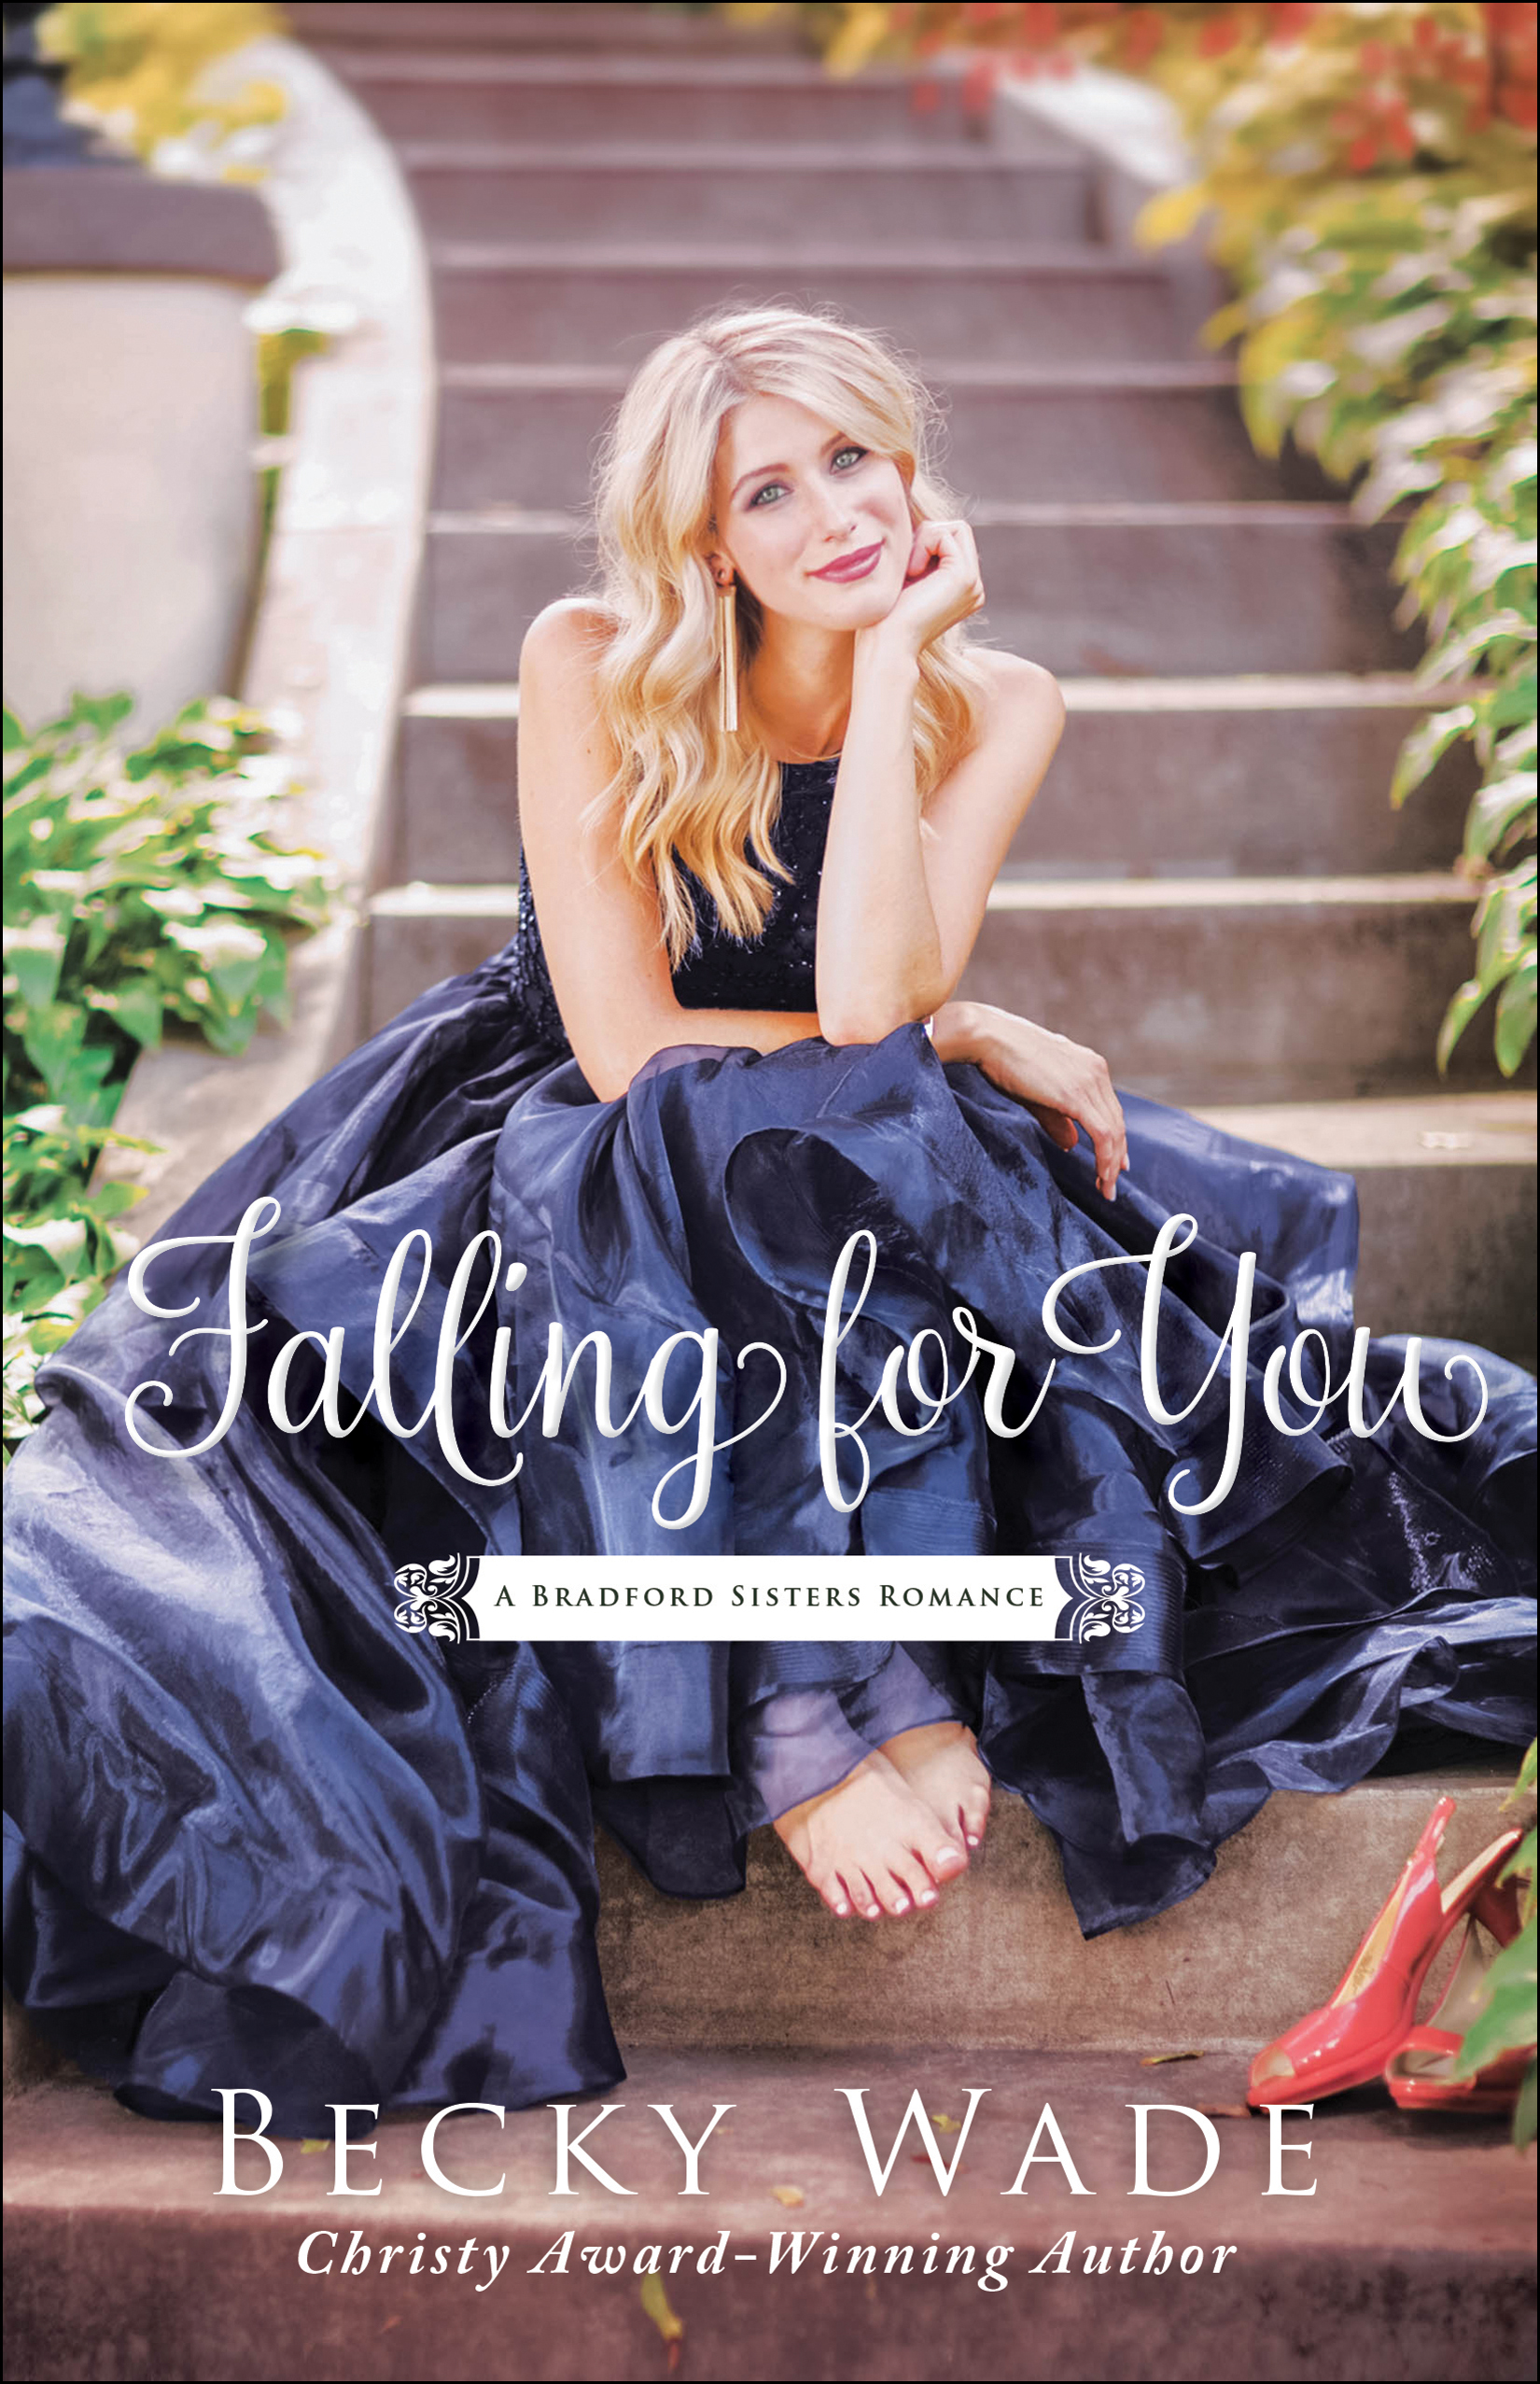 Book review of Falling For You by Becky Wade (Bethany House) by papertapepins